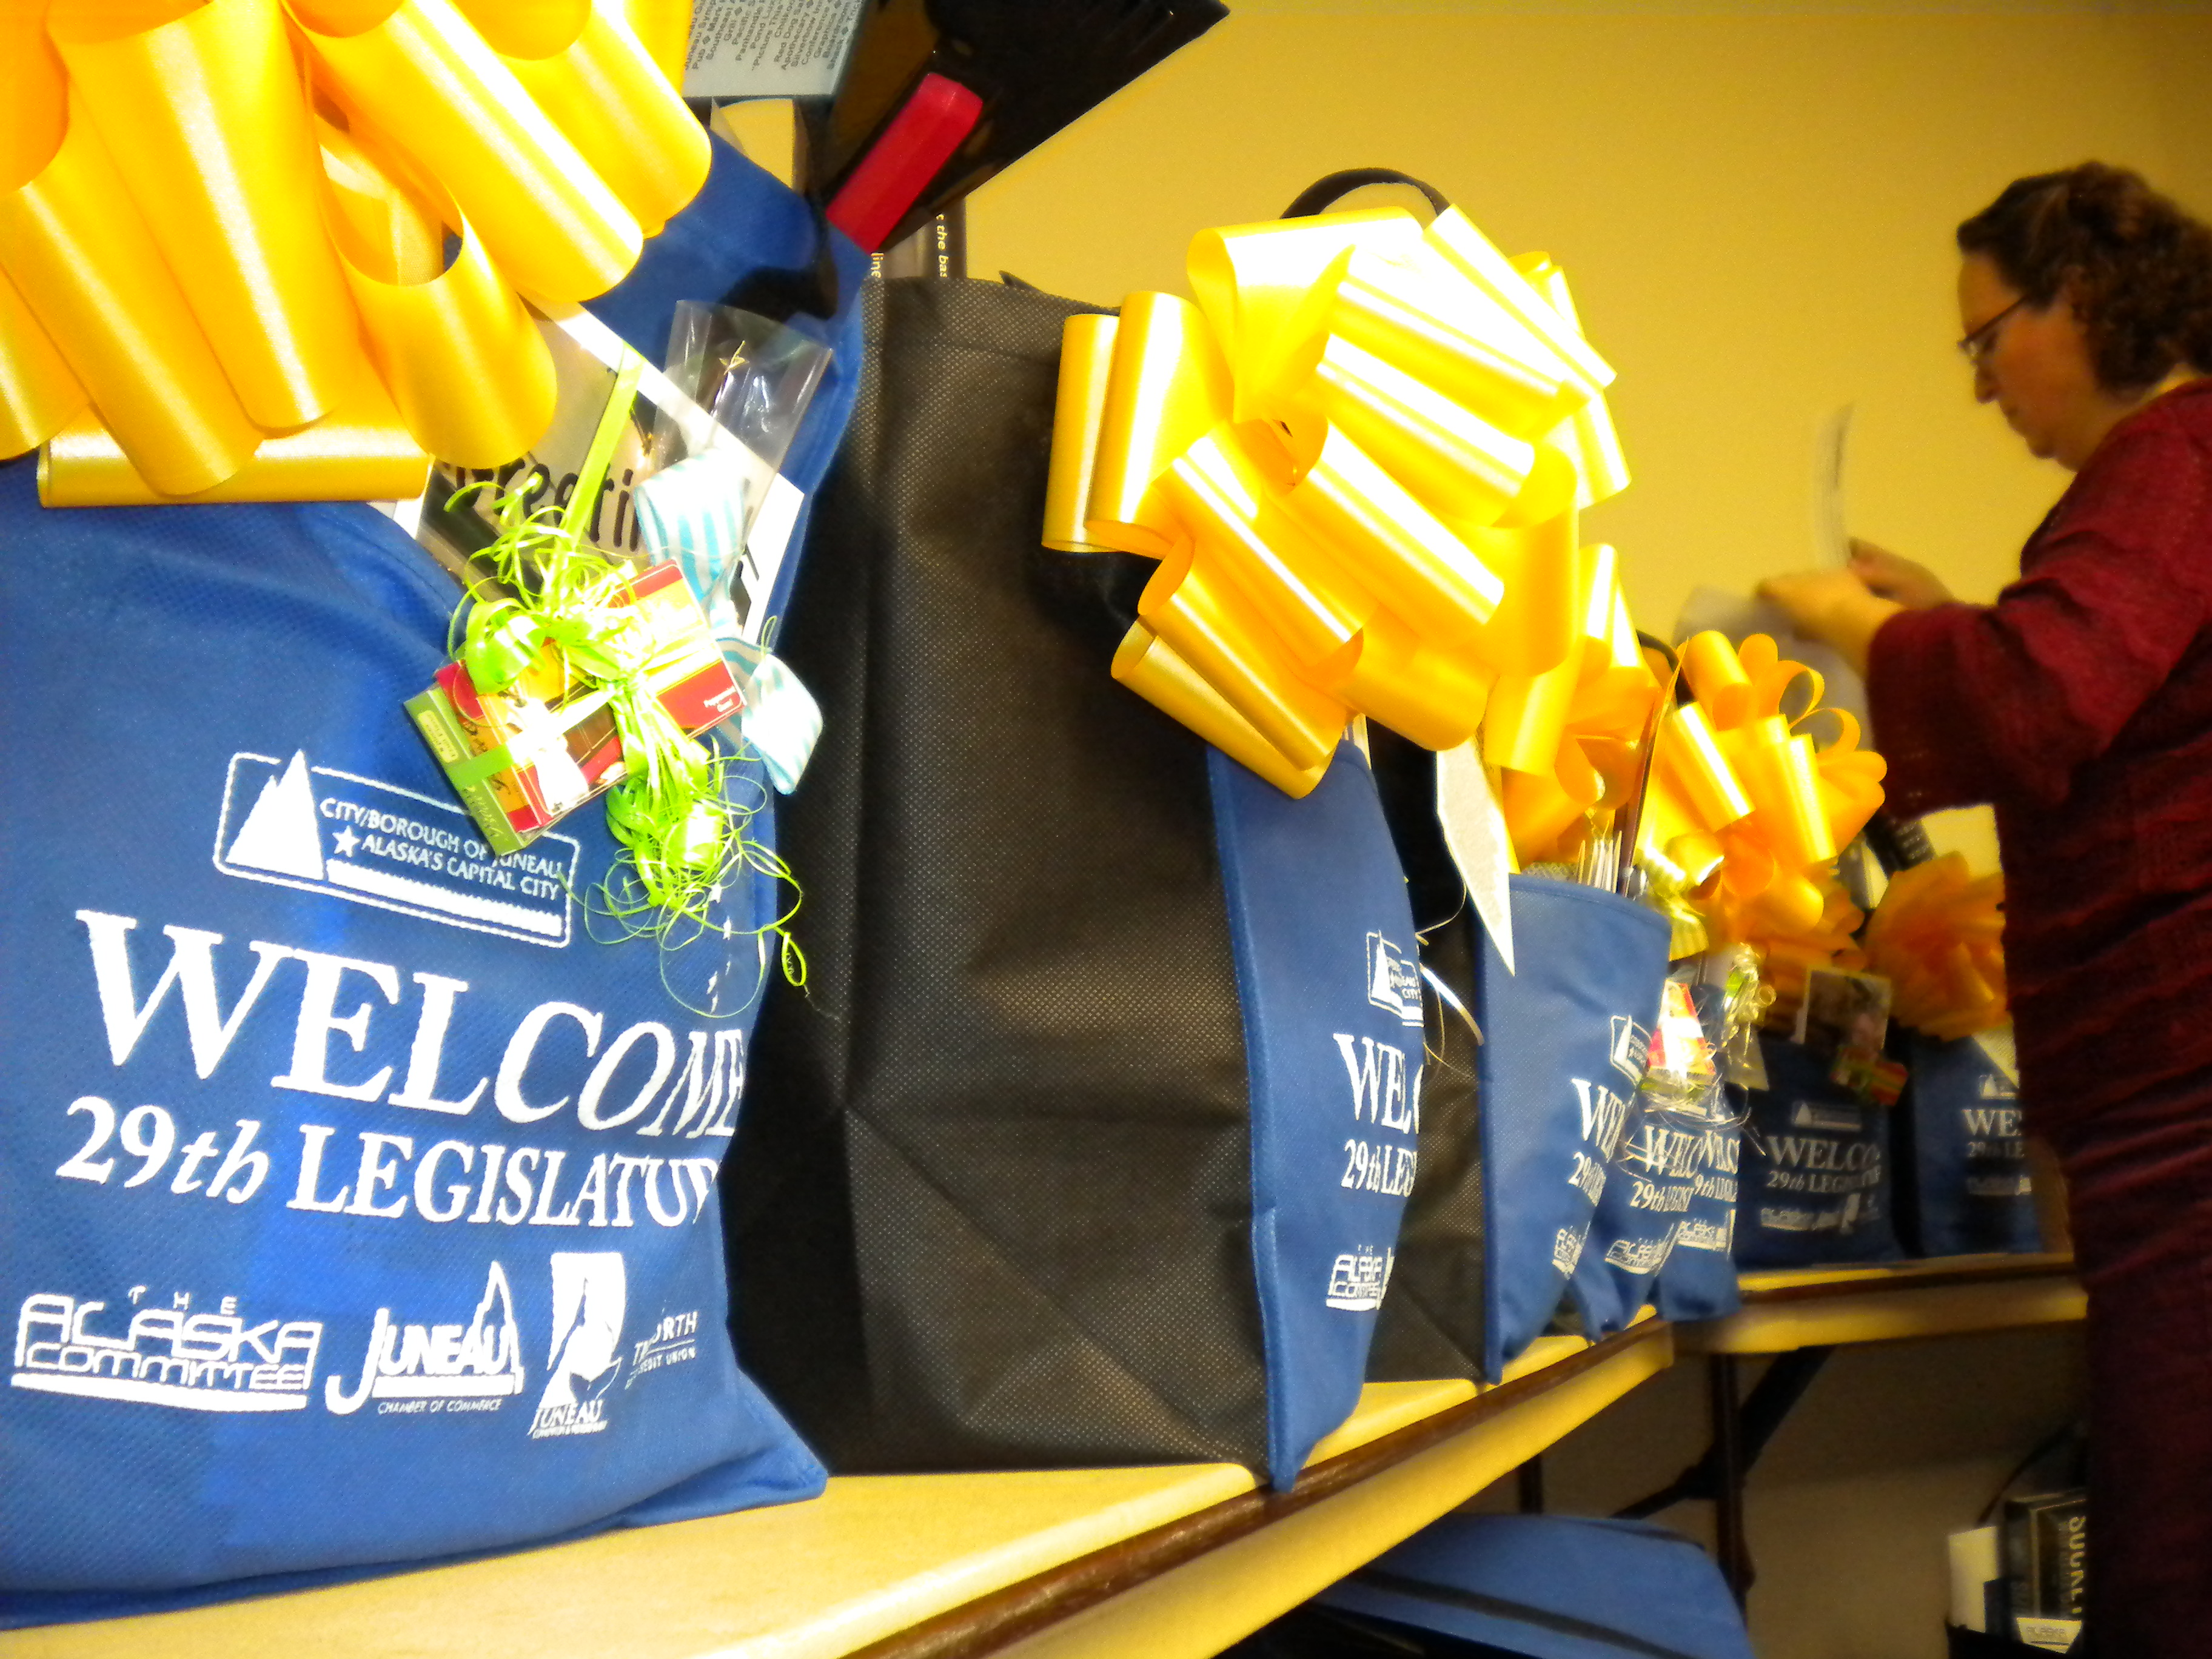 Beth McEwen stuffs gift baskets that will be given out at the 30th annual Legislative Welcome Reception in Centennial hall.